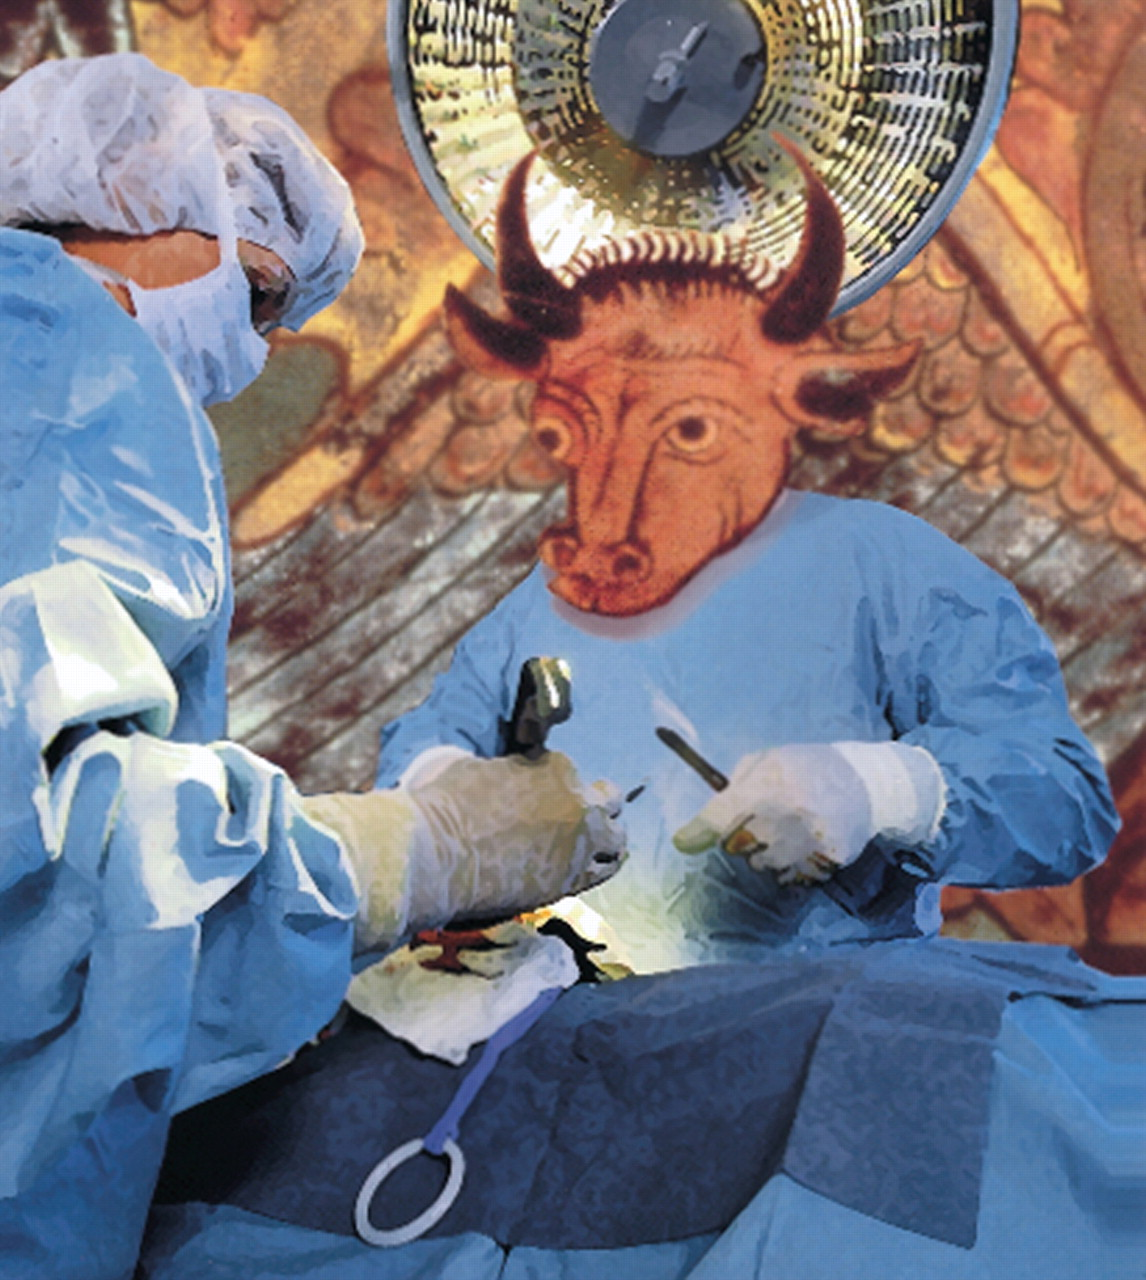 orthopedic surgery Orthopedic surgery as view at 35x with nancam hd by designs for vision, inc.